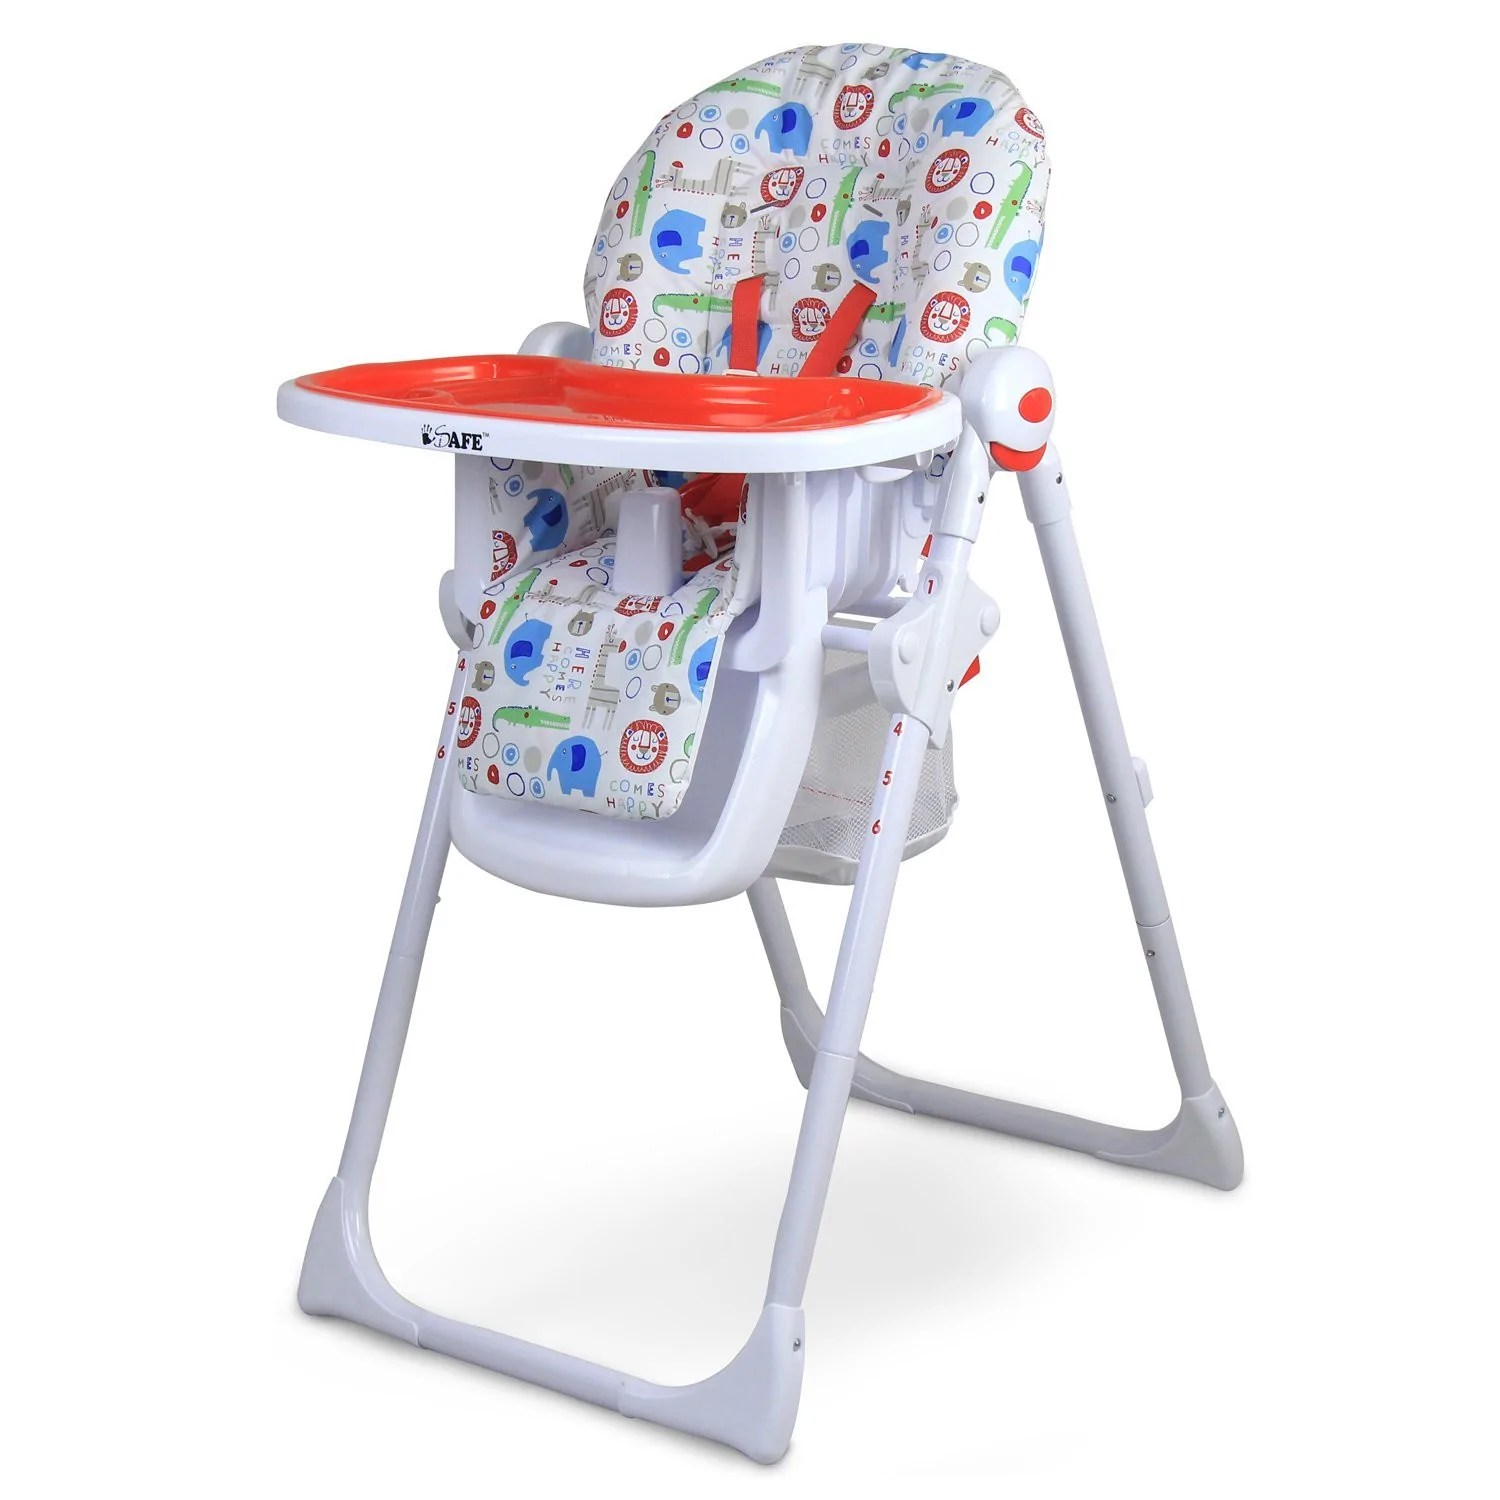 high chair basket chaise lounge chairs outdoor welcome to baby travel ltd exclusive british designer and